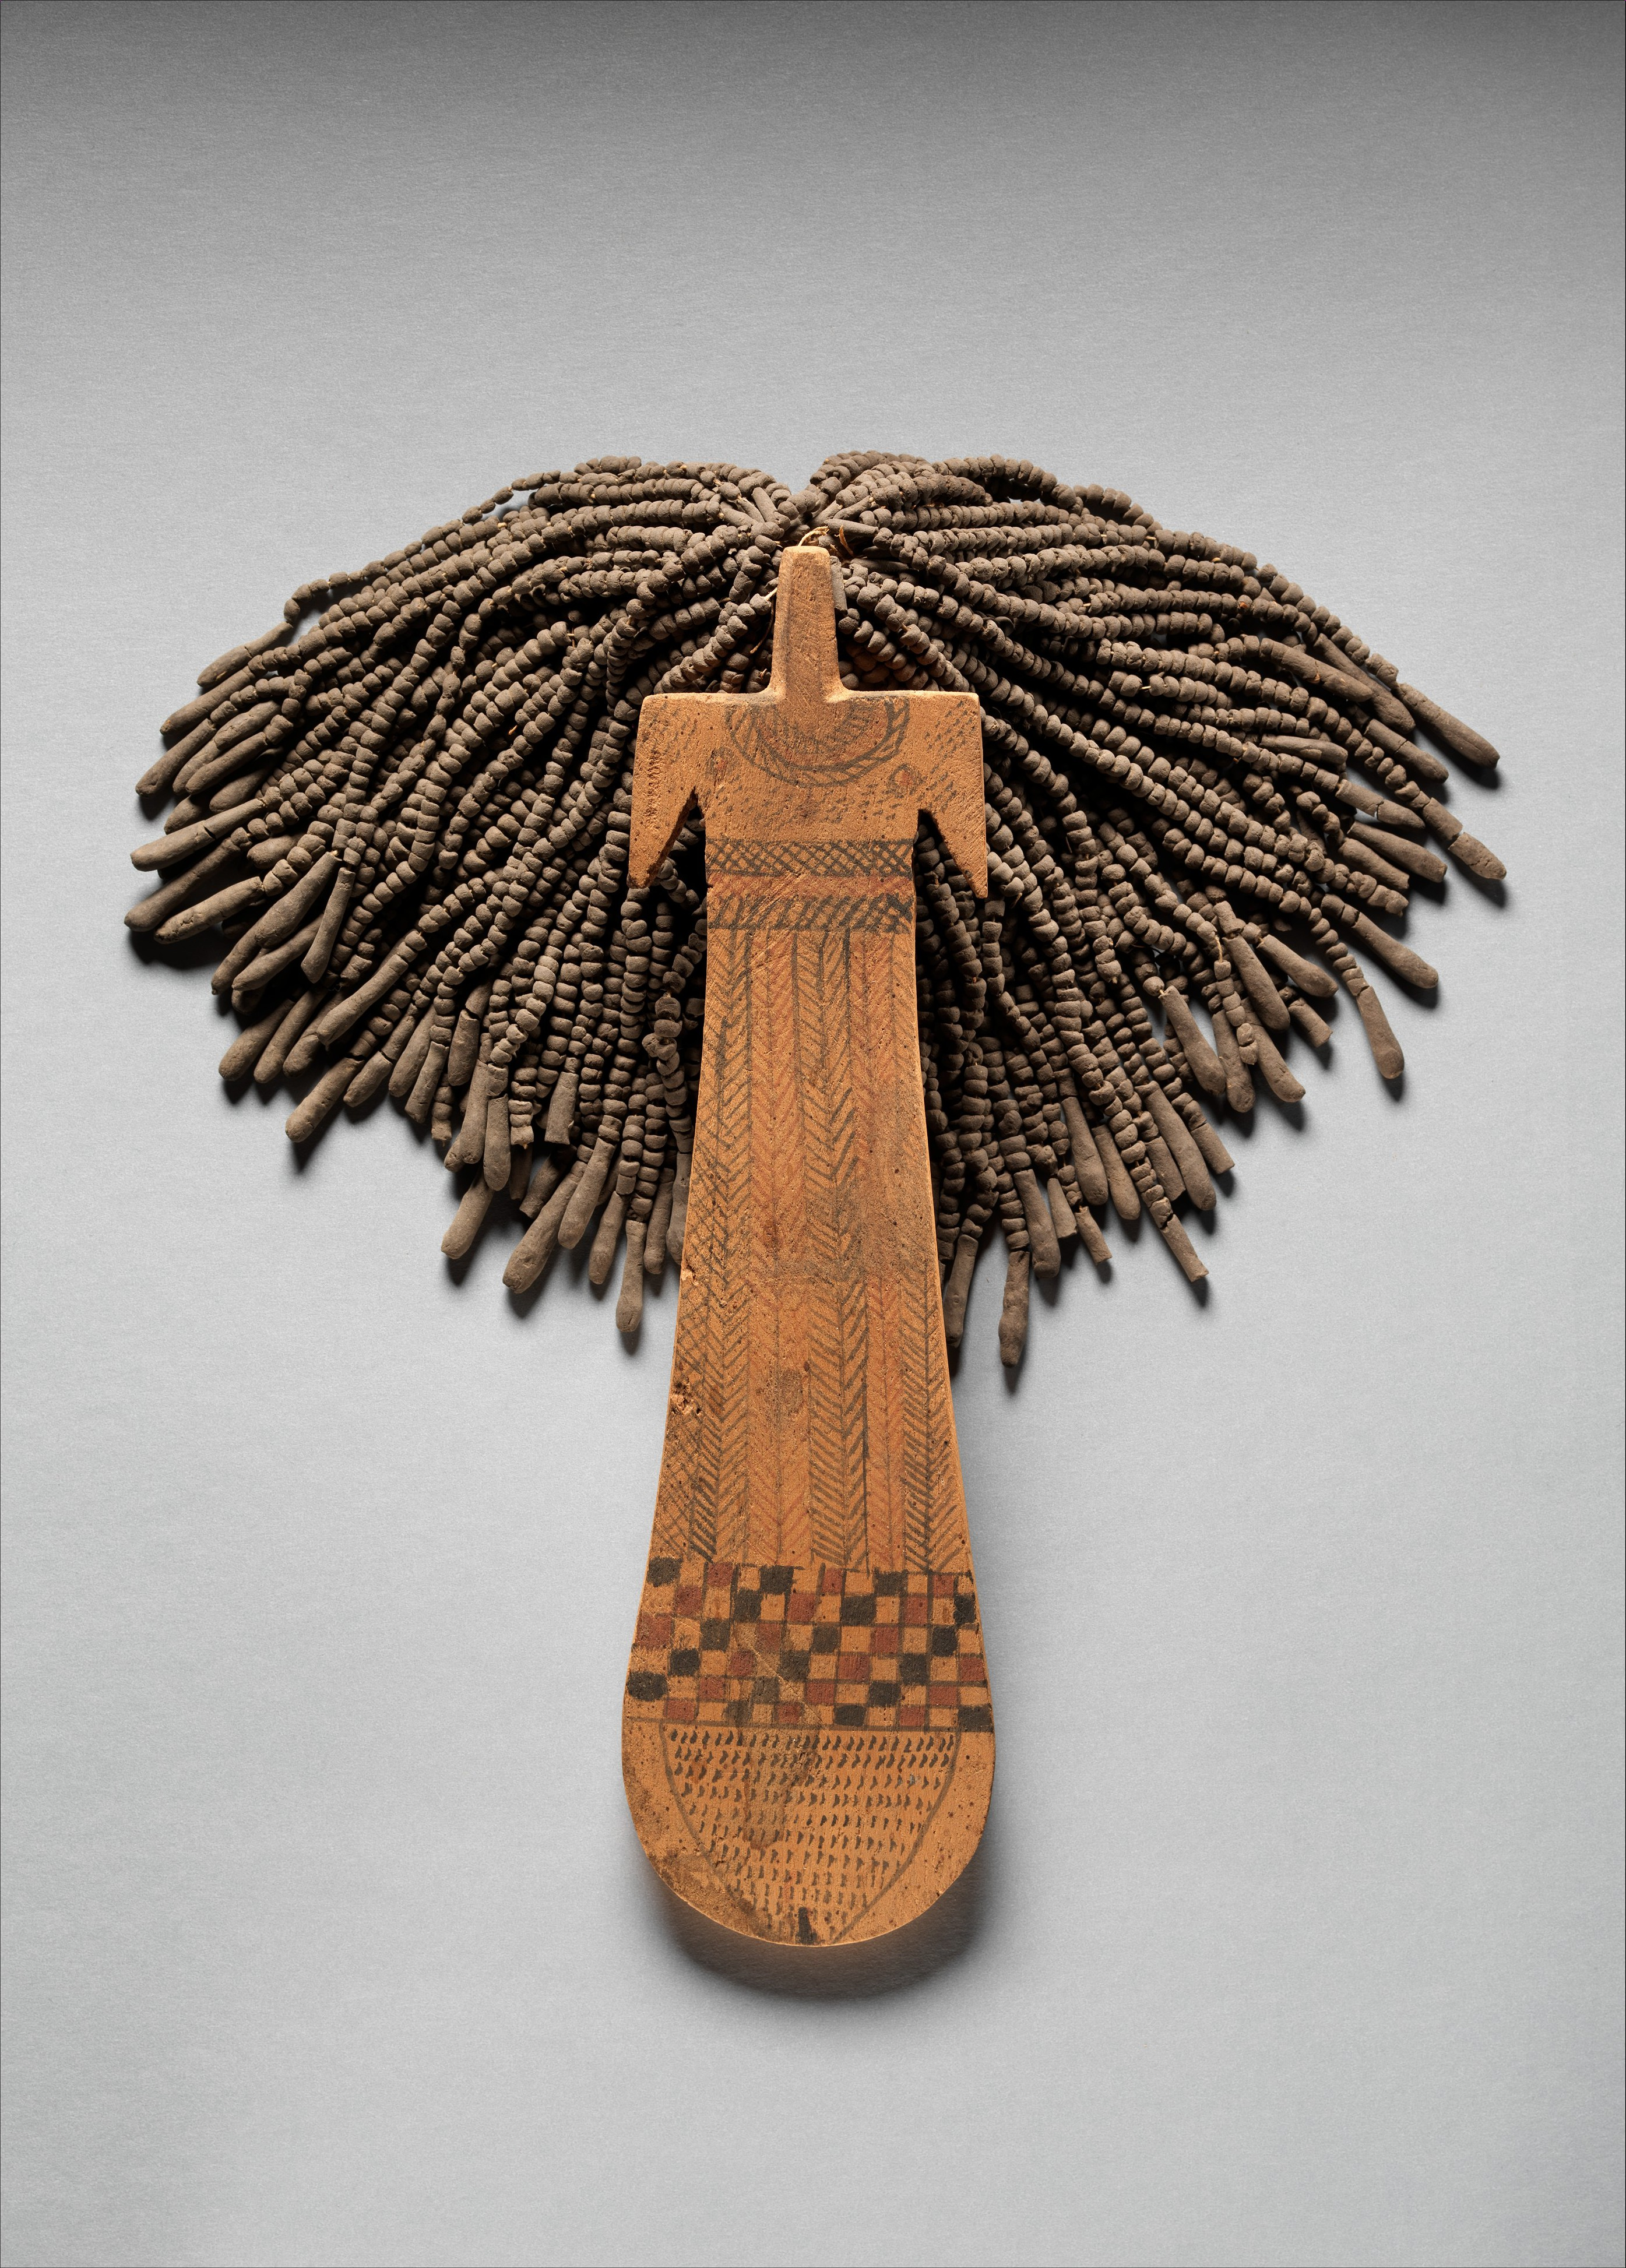 Paddle Doll Middle Kingdom The Met